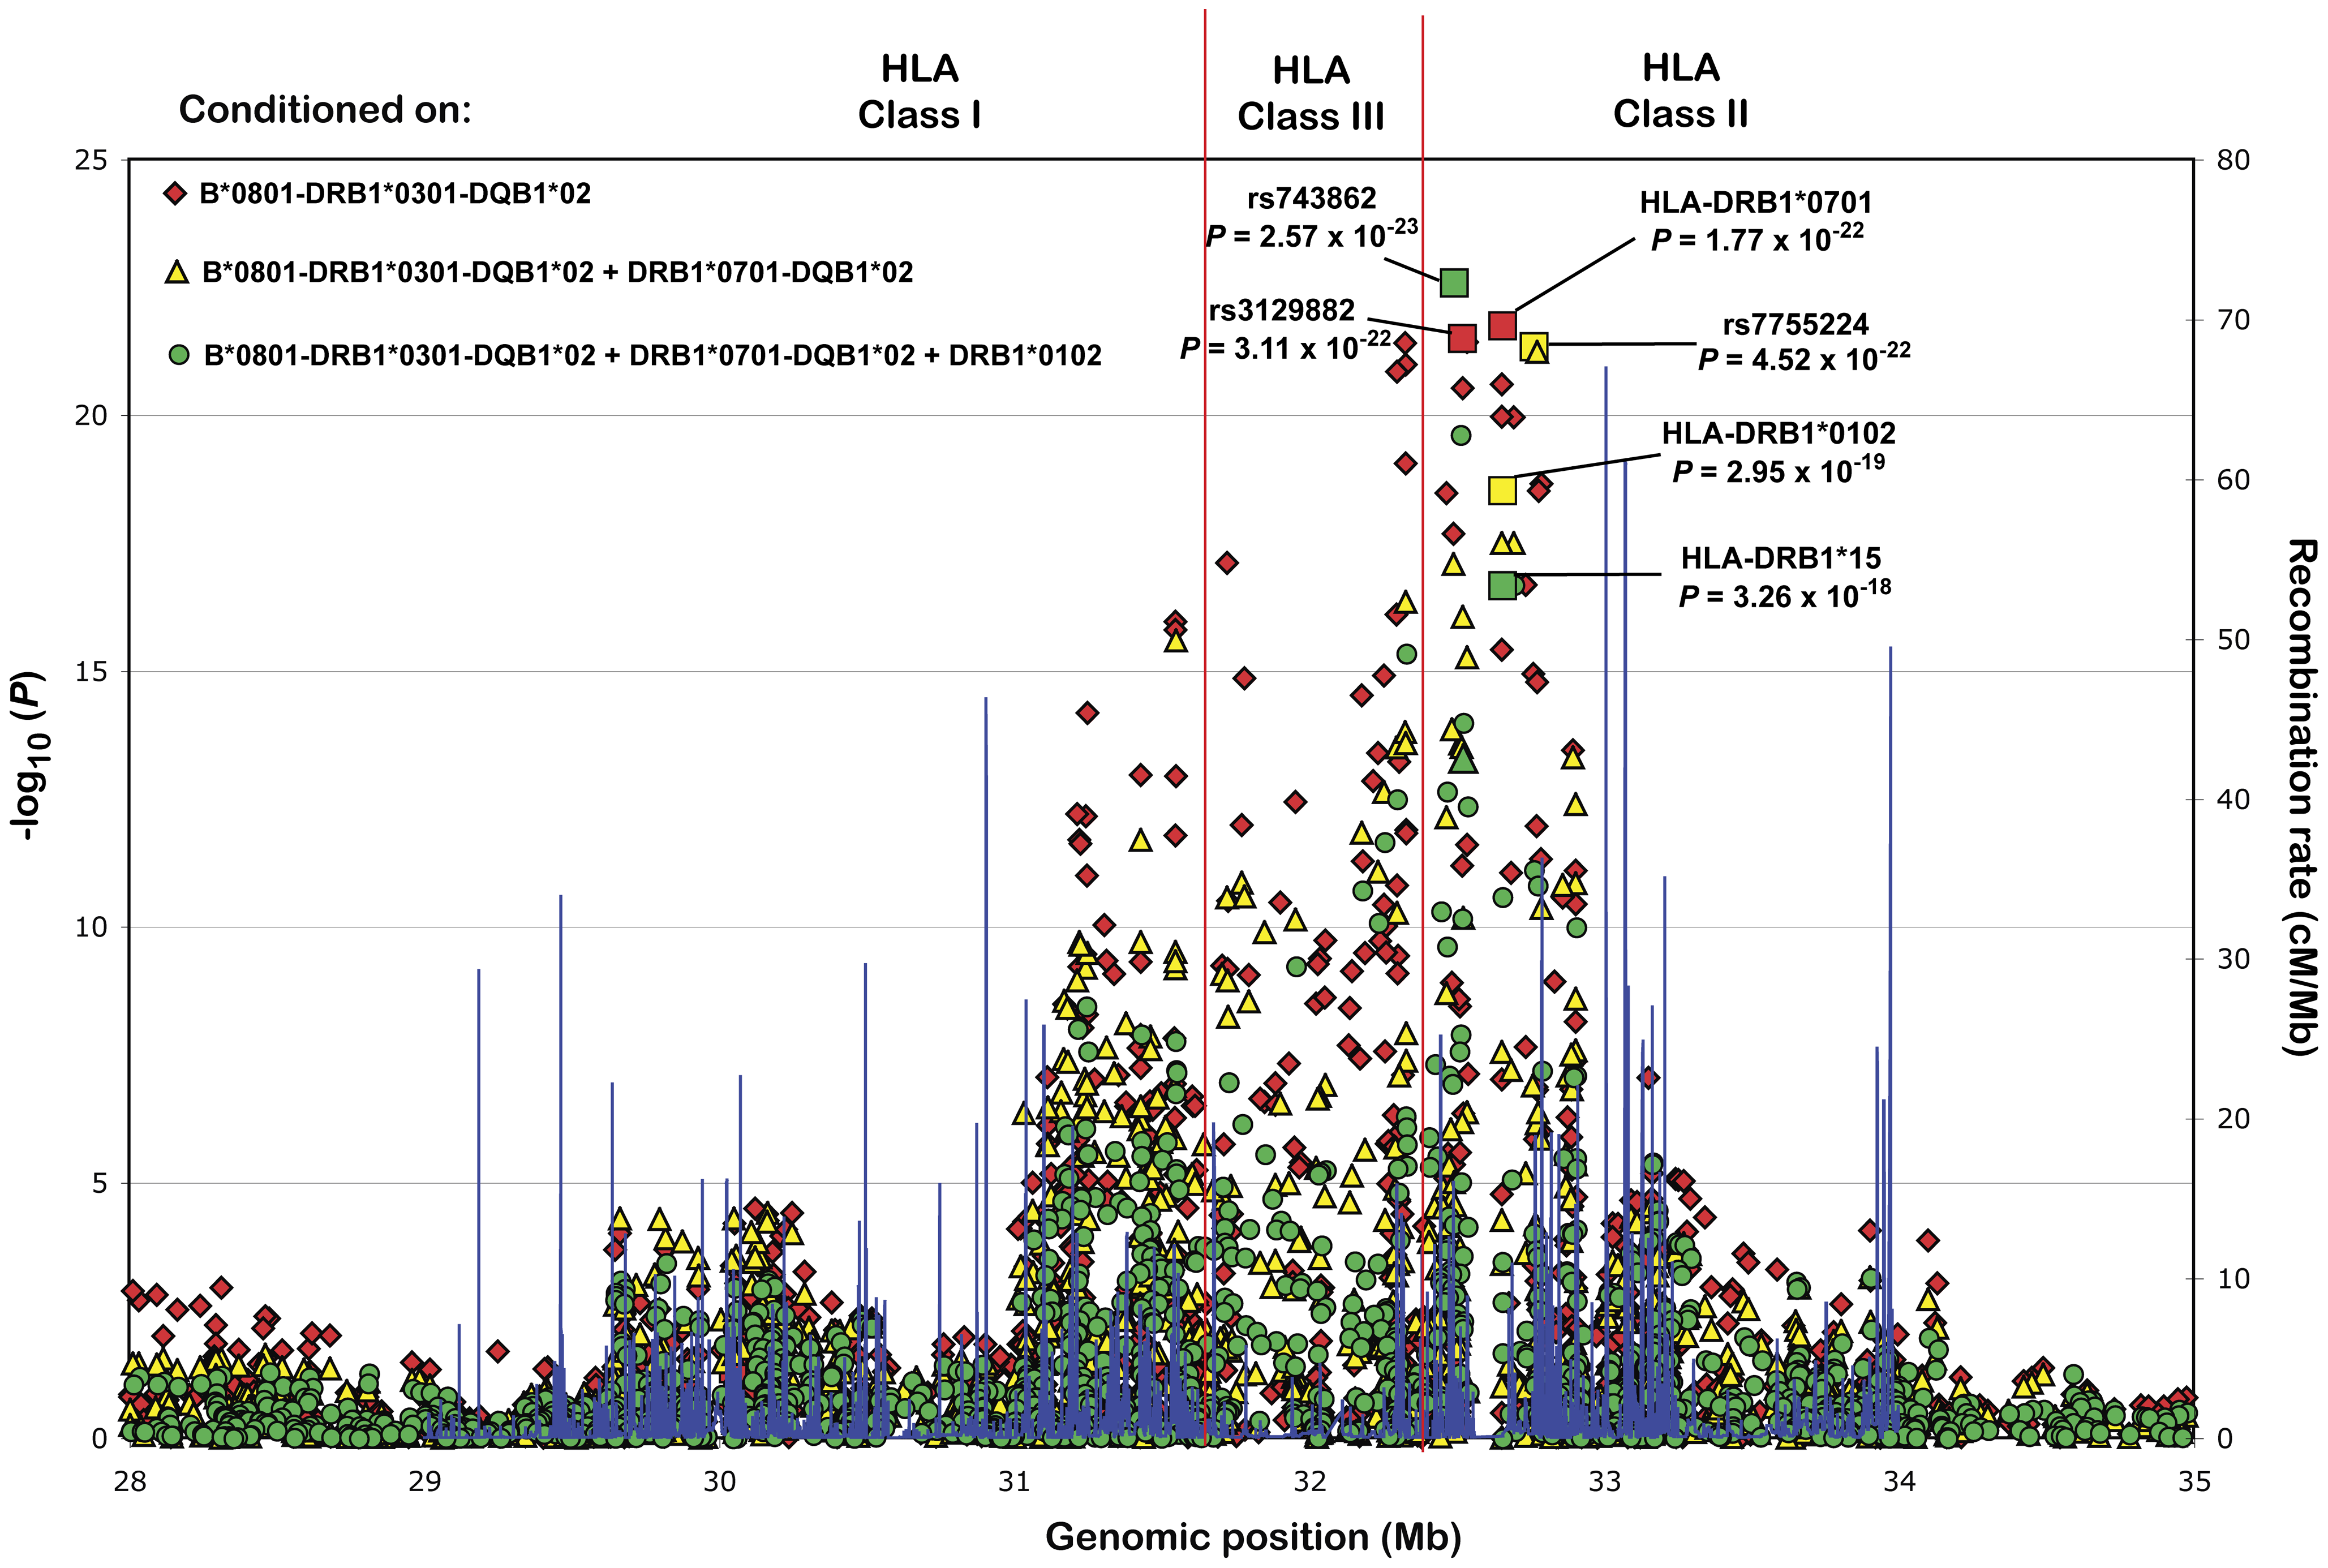 Secondary association signals in the HLA locus.